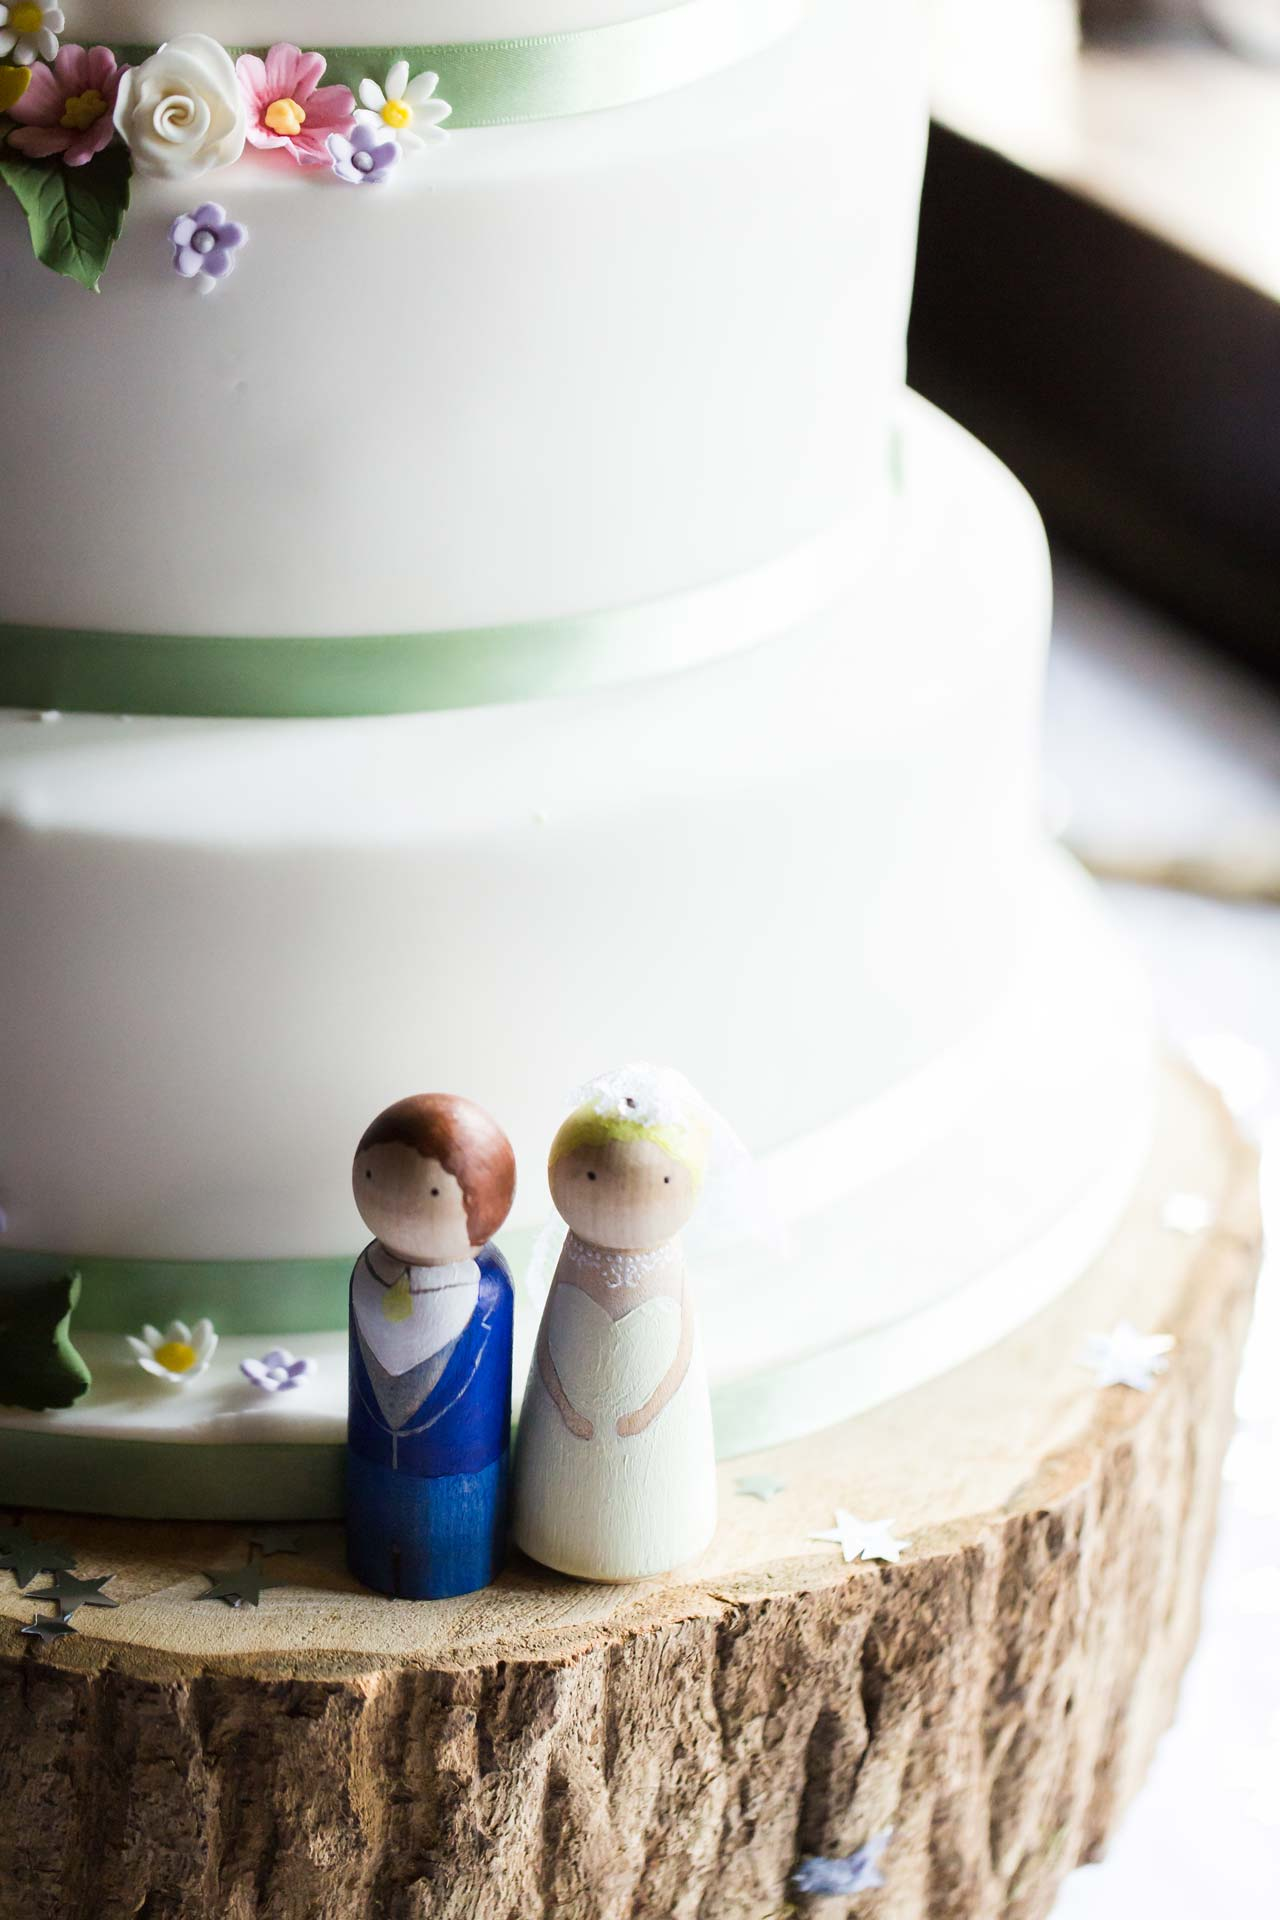 Andy & Nicola Wedding Stationery - Wedding cake figures